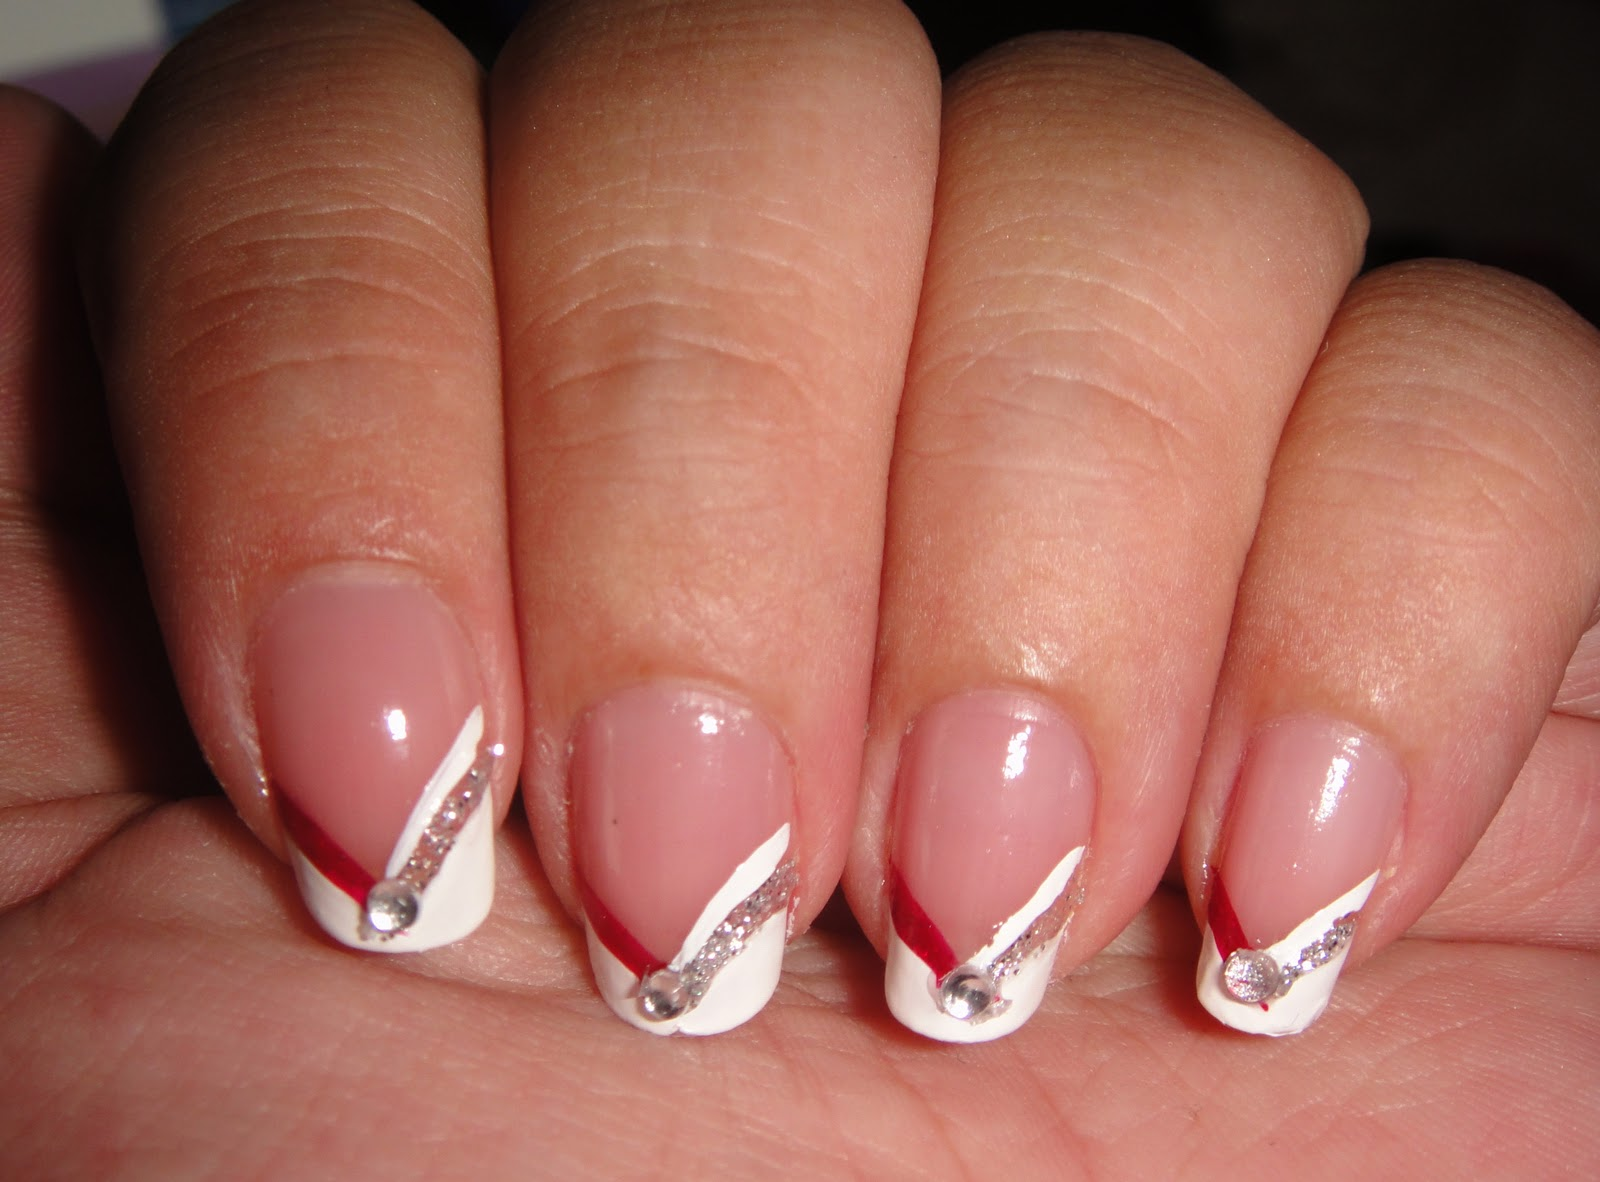 Juicy Nails & Makeup!: Red & Silver Chevron French + Fall Nail ...